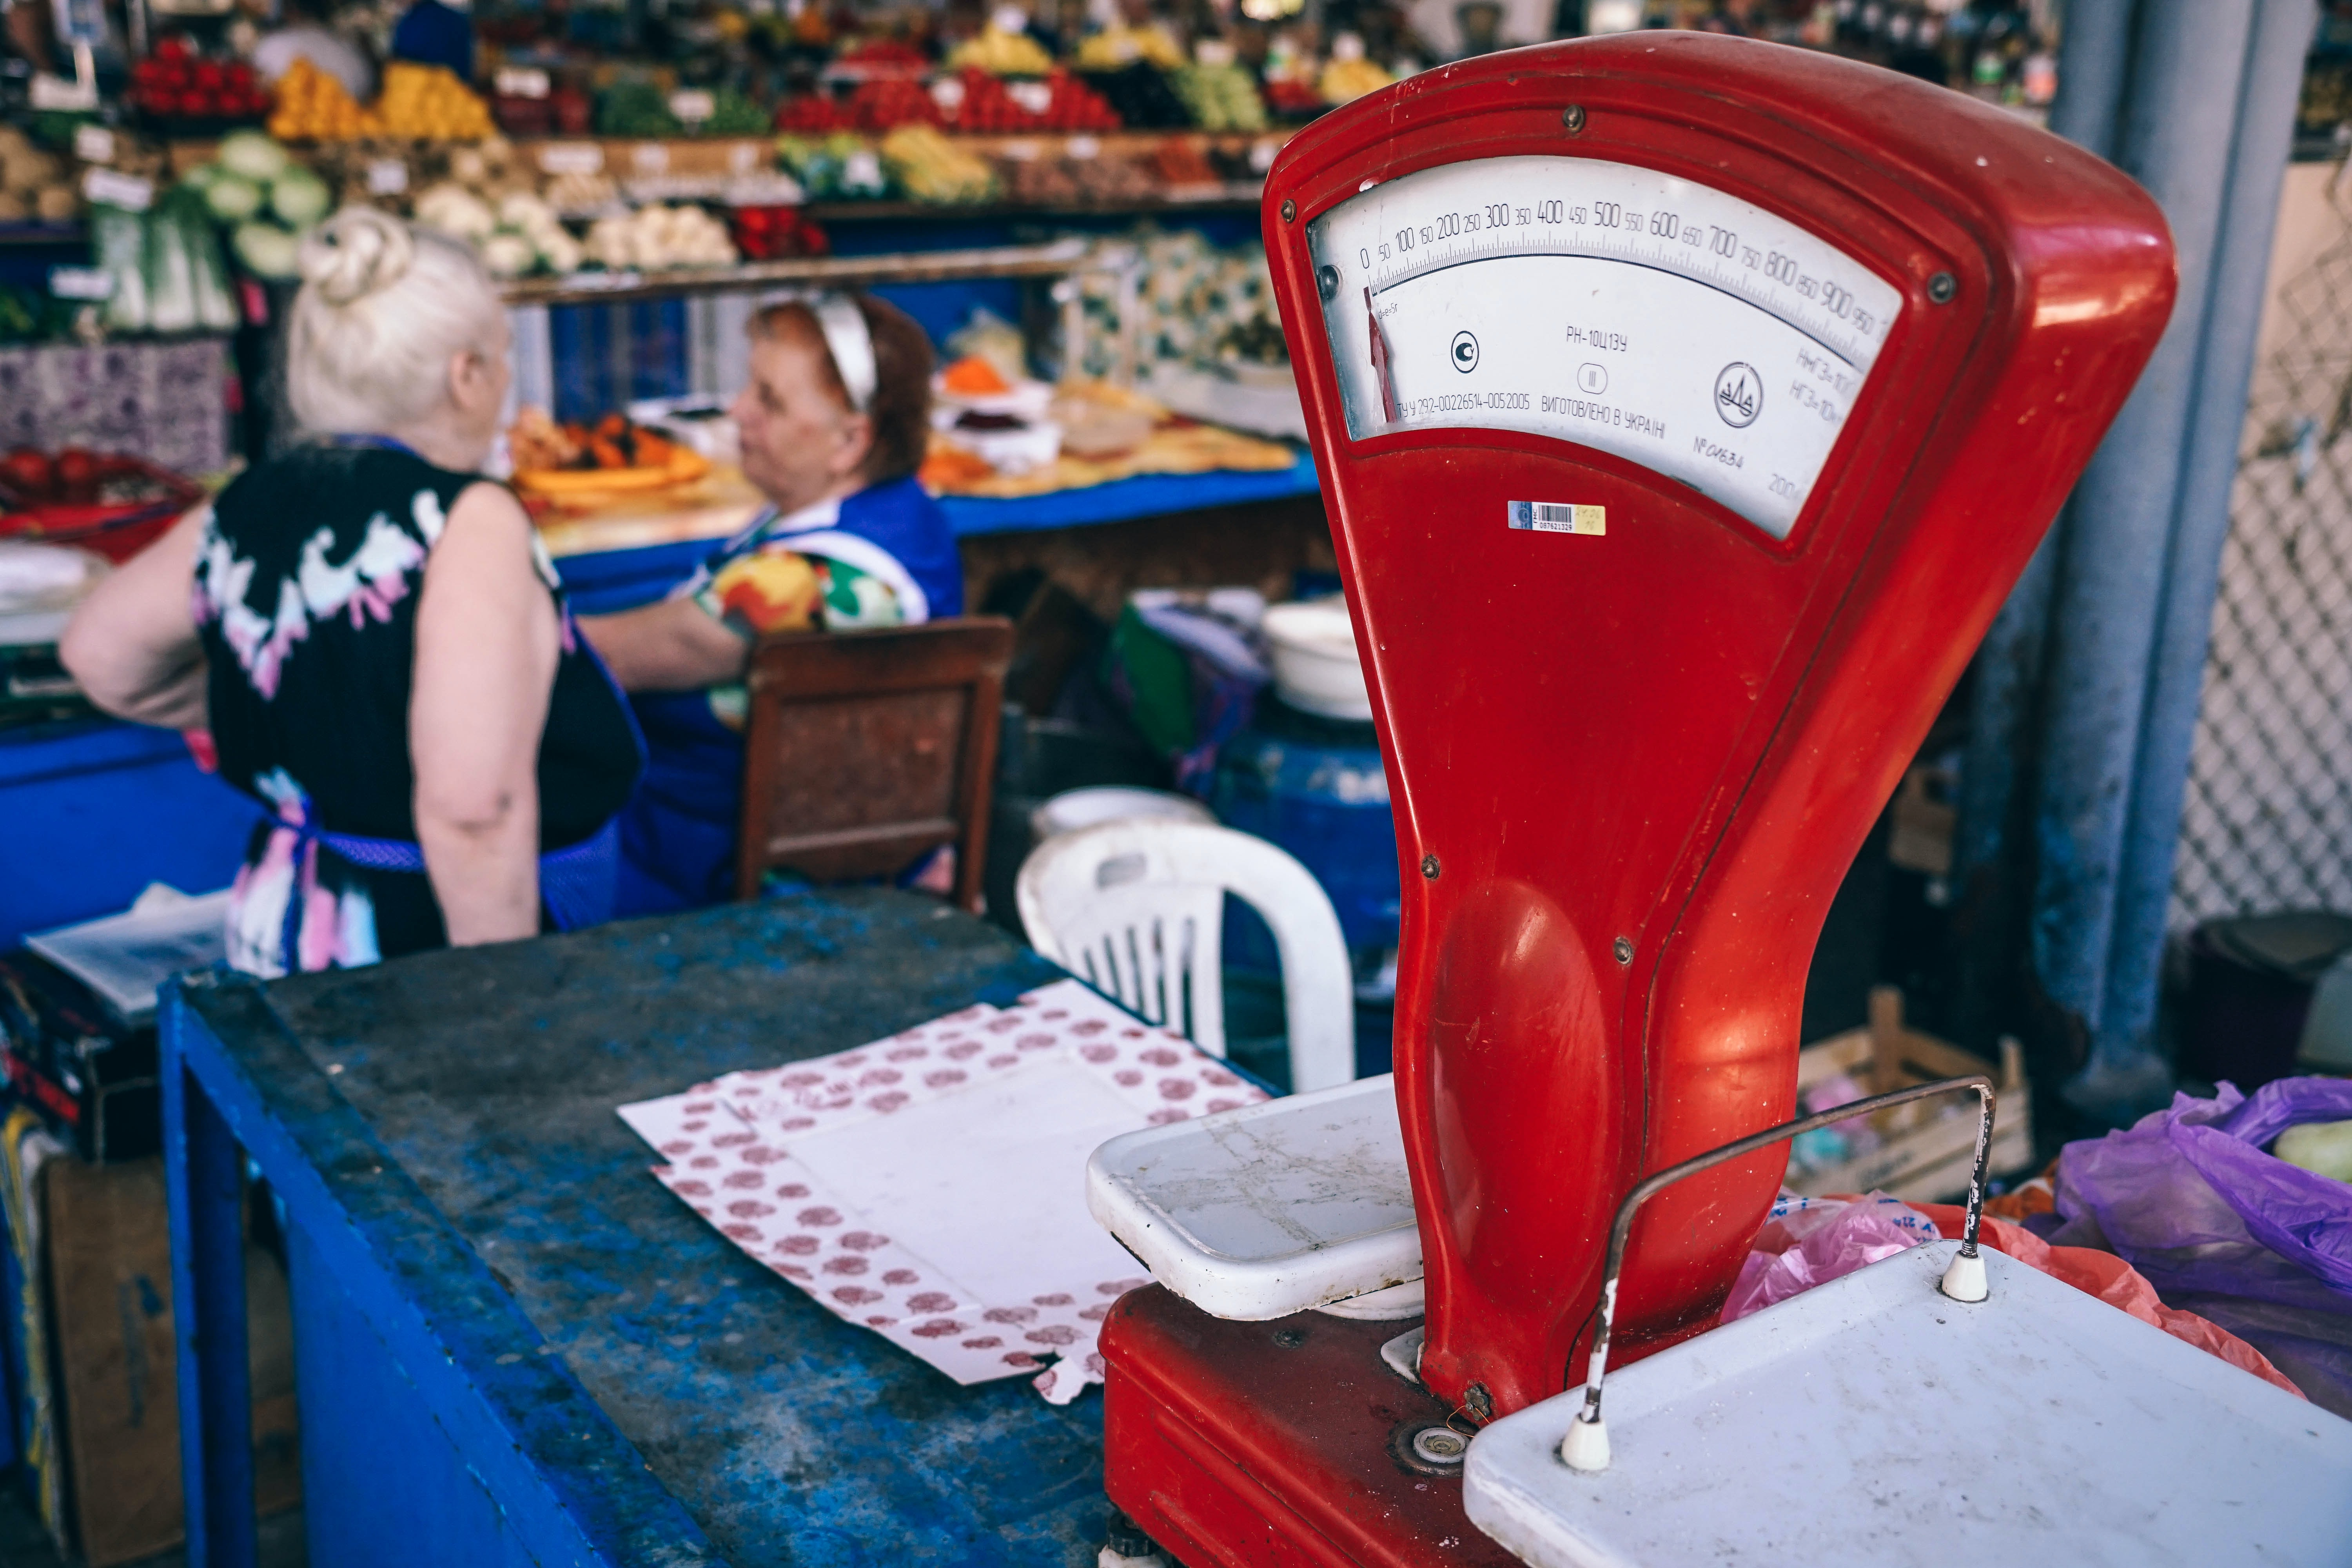 photo of red analog postage scale